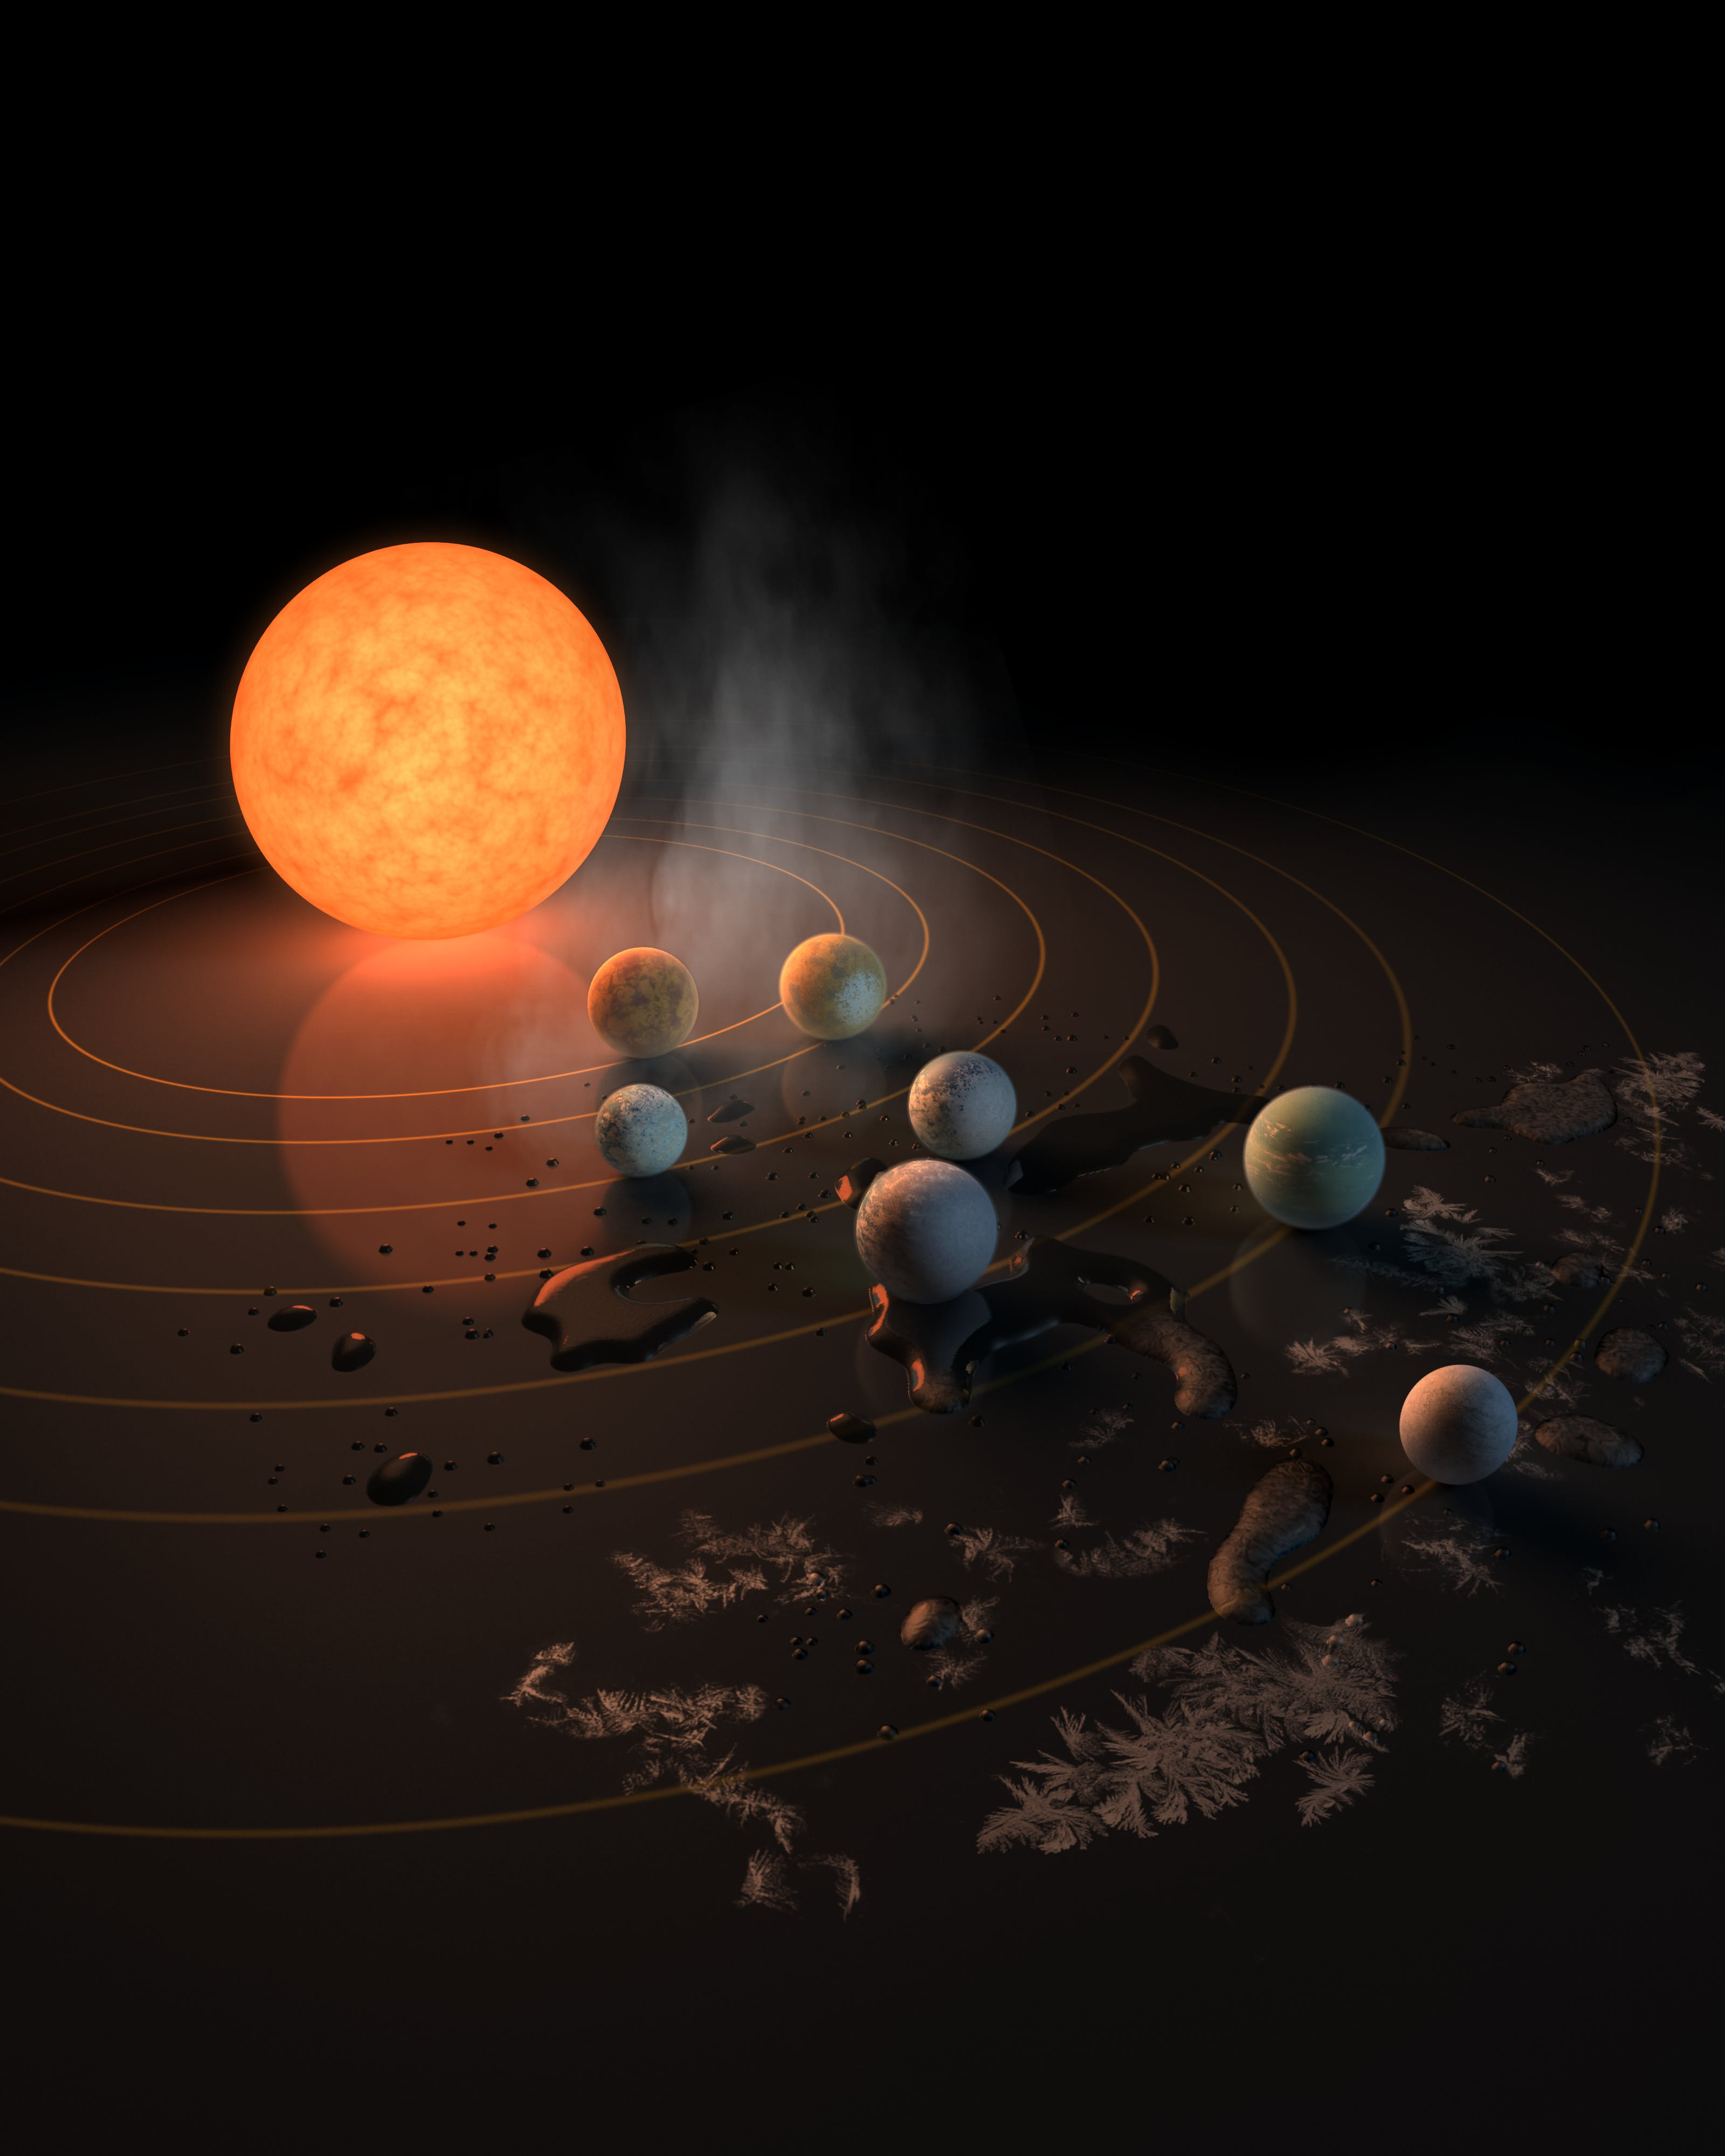 NASA found new planets and we can maybe live there